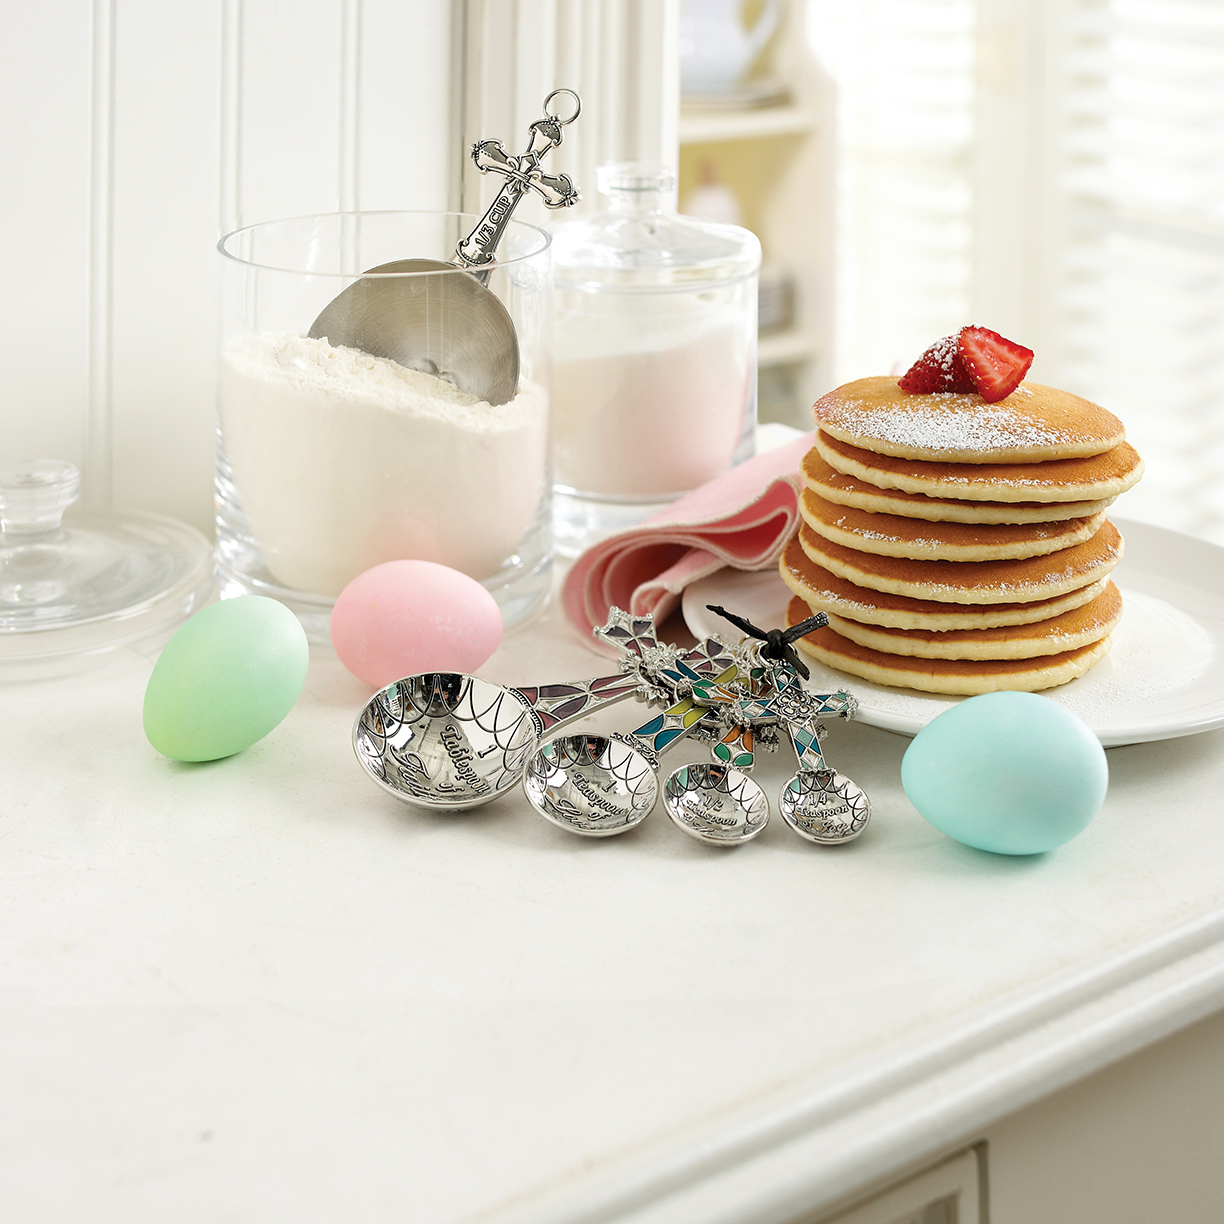 Photography - Pancakes Stacked on Plate with Easter Eggs